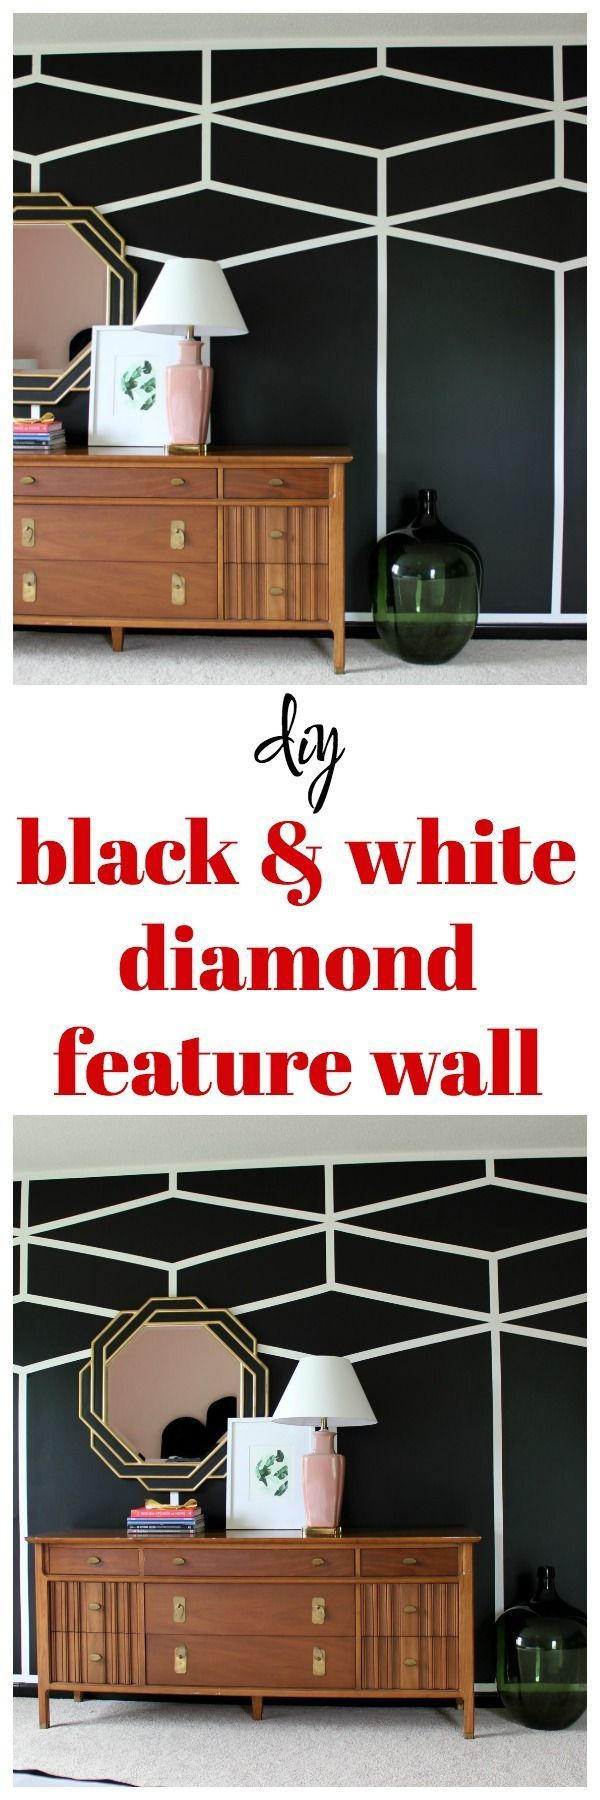 Diy Black And White Diamond Feature Wall Accent Wall Bedroom Wall Design Feature Wall Design